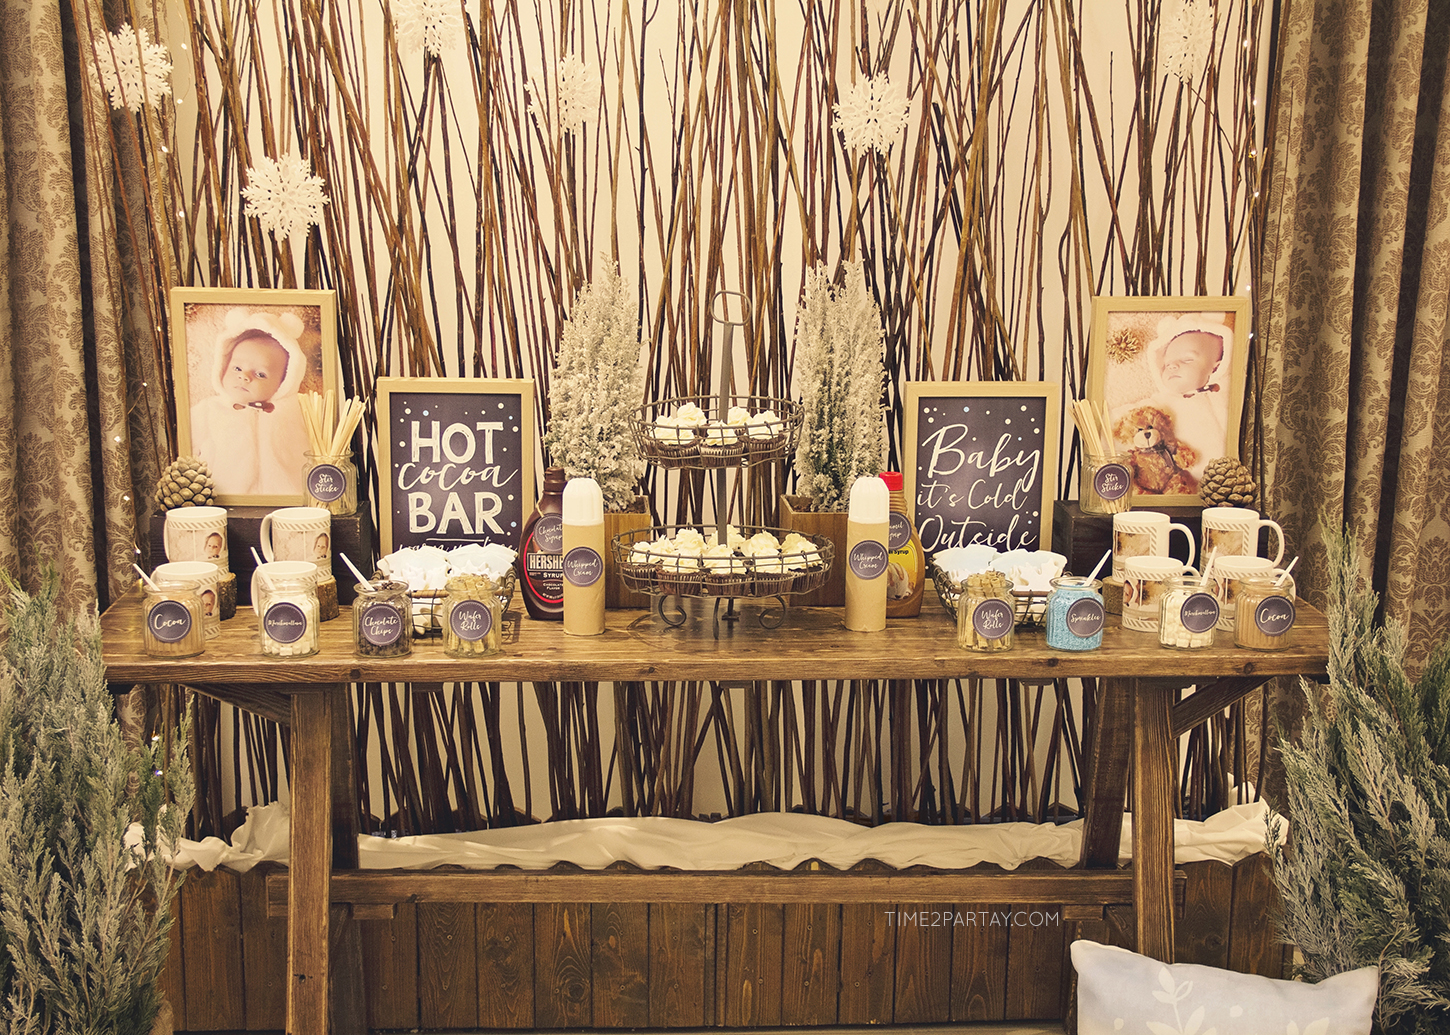 Get Ready To Cozy As We Take A Tour Of This Incredible Rustic Winter Soiree